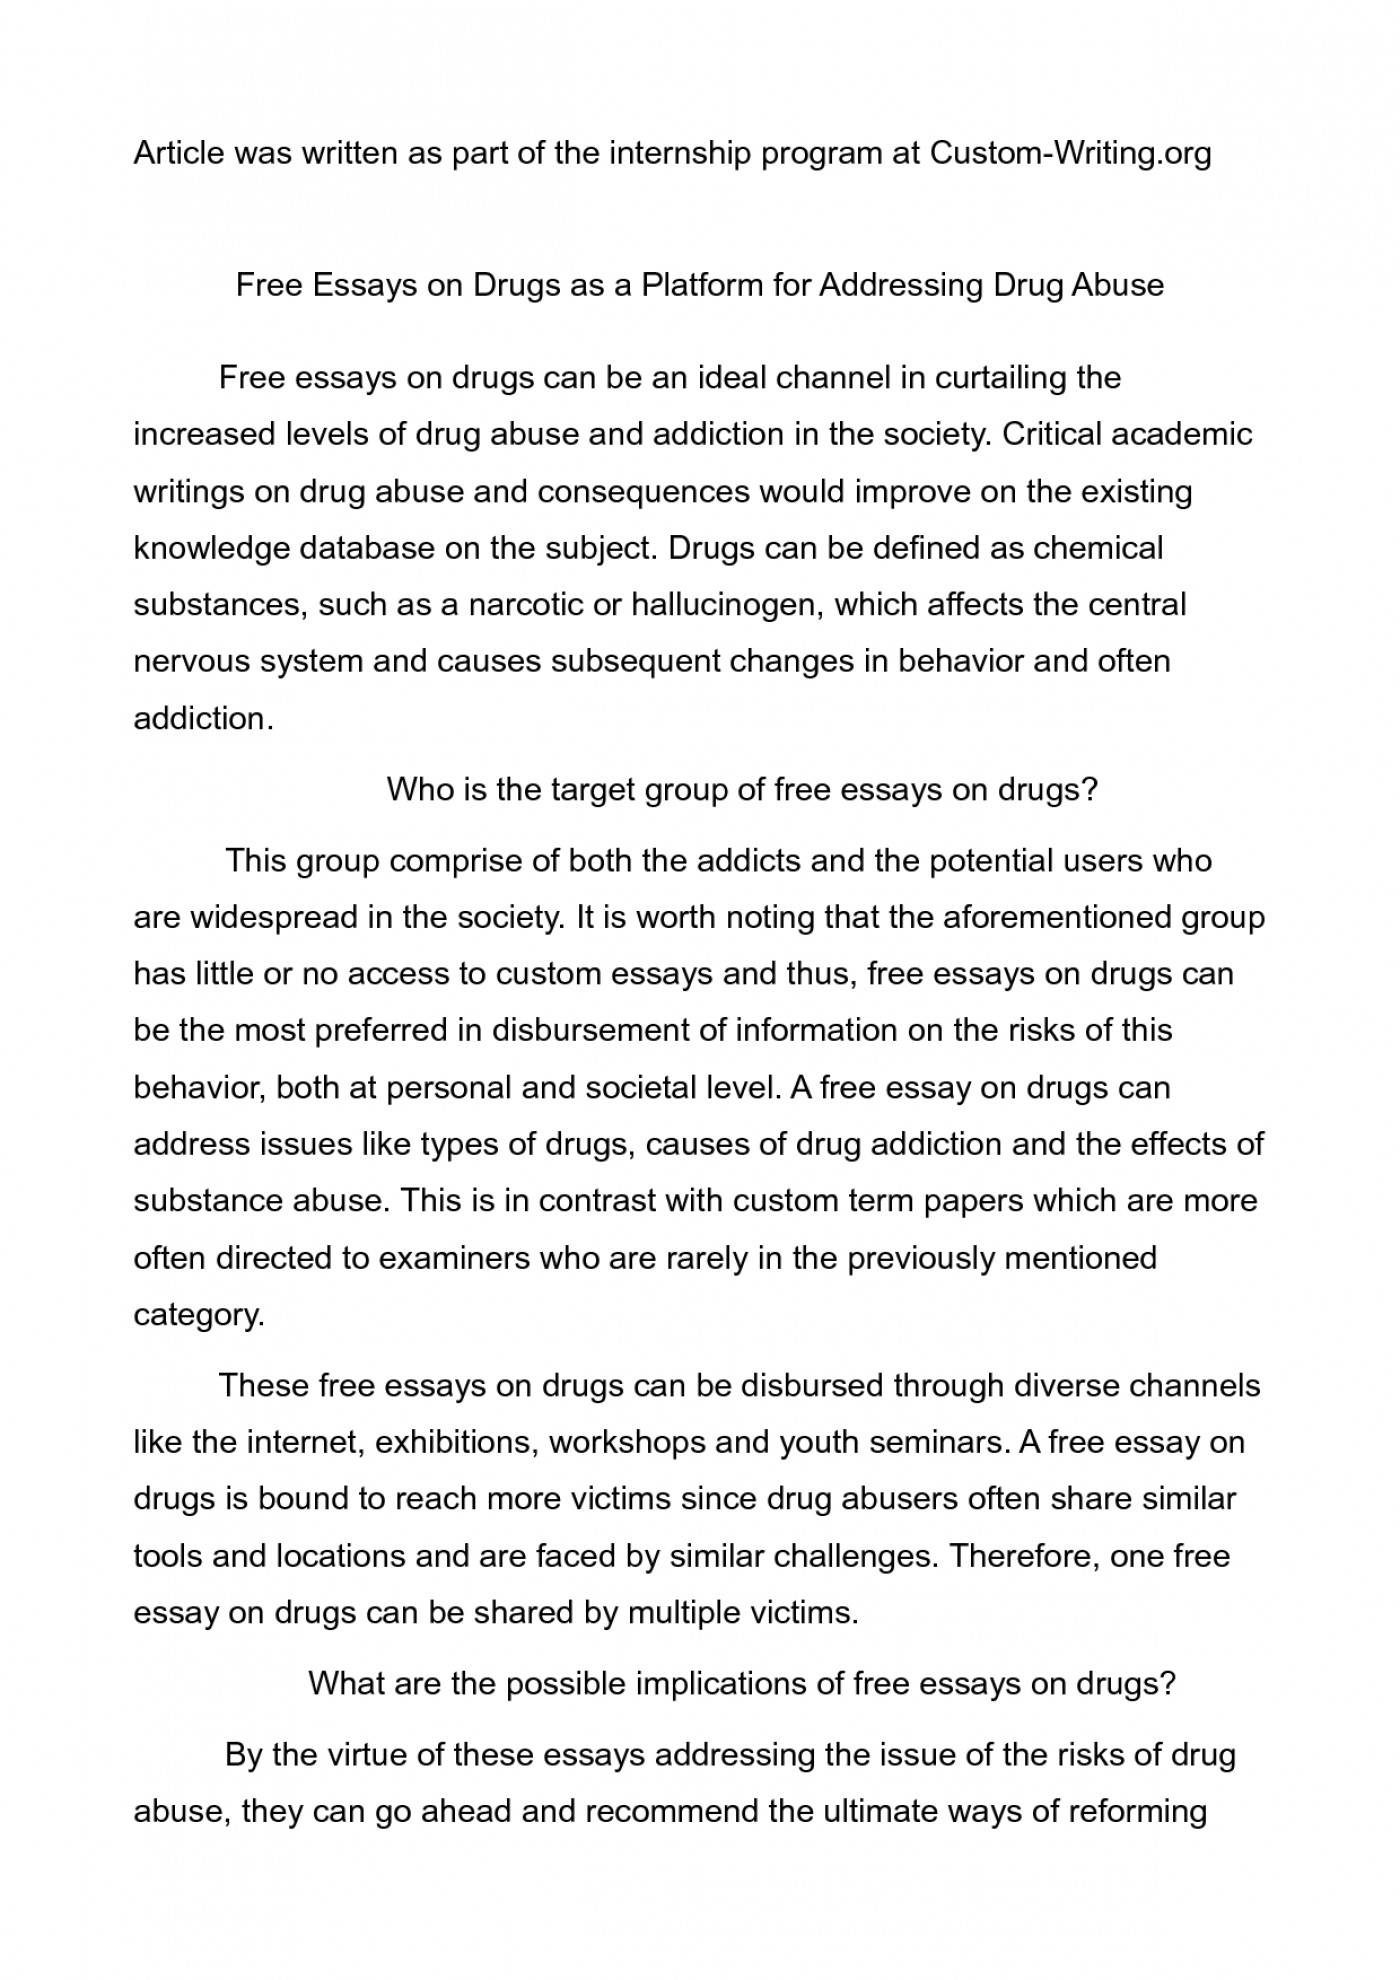 009 Argumentative Essay About Drugs Amazing Definition Pdf Sample Middle School Topics For High 1400